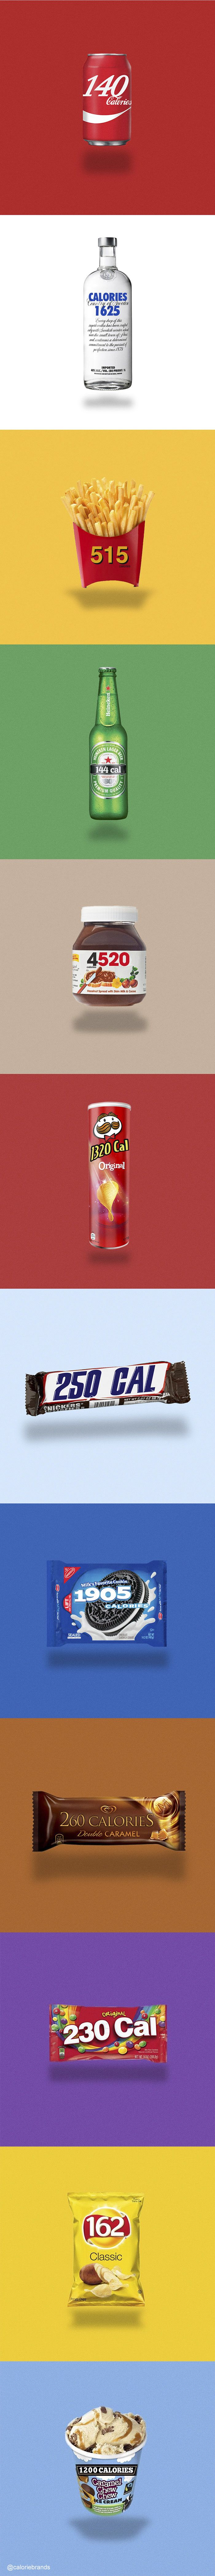 Honest Products: Famous Logos Replaced By Calorie Counts